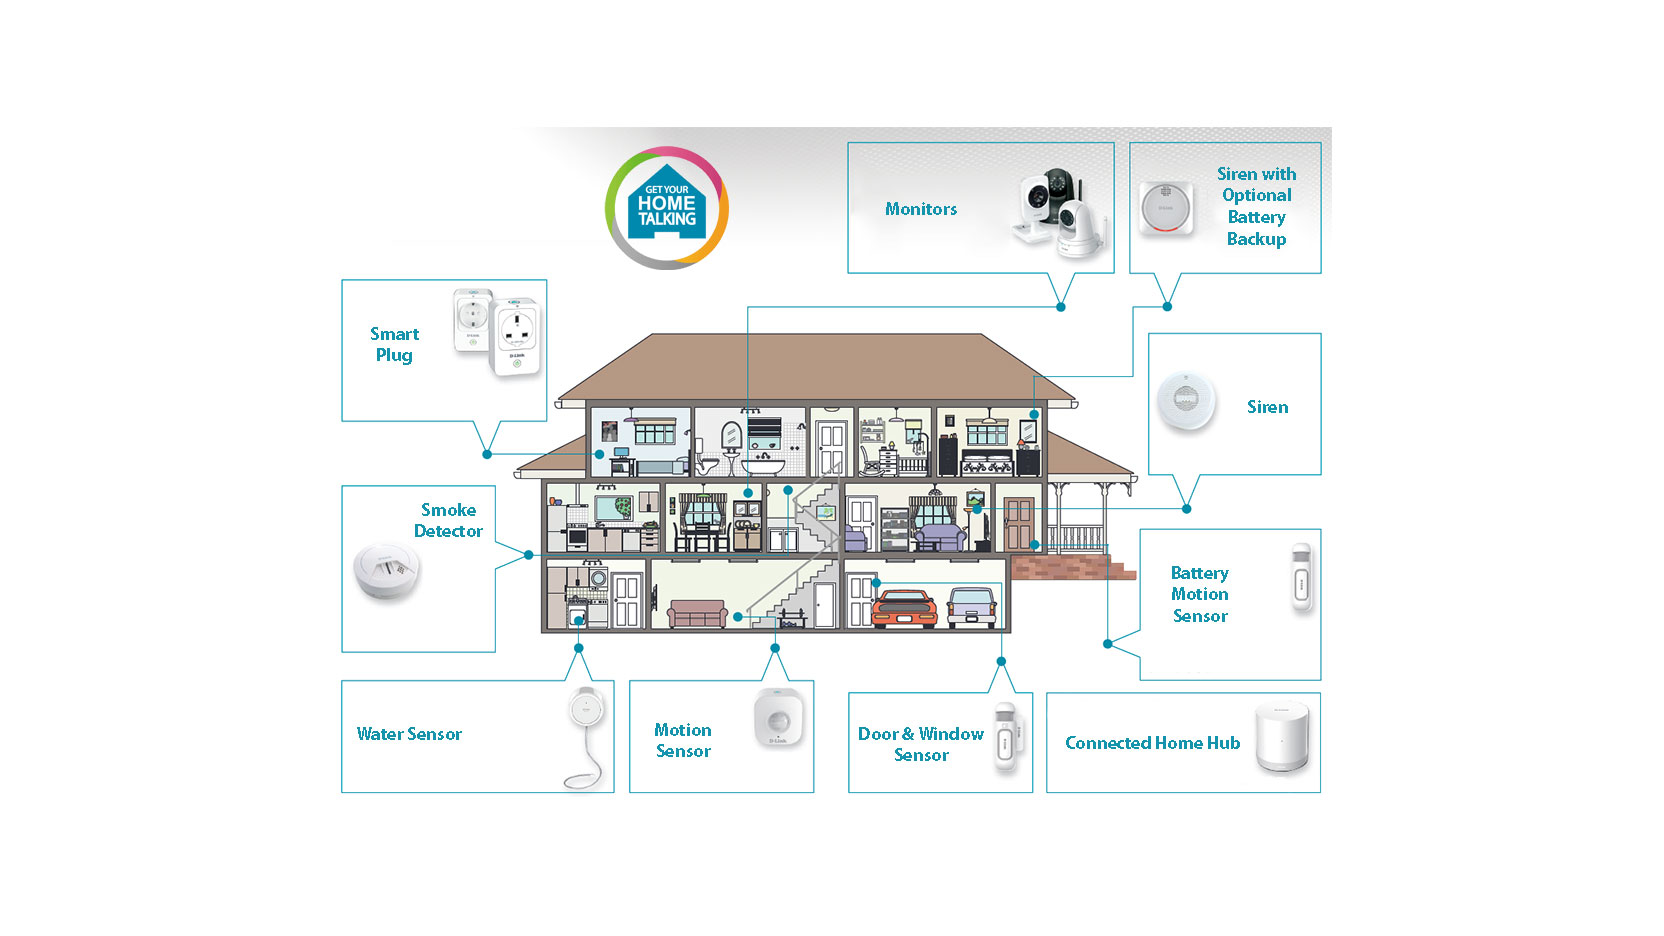 mydlink Home - Get your home talking